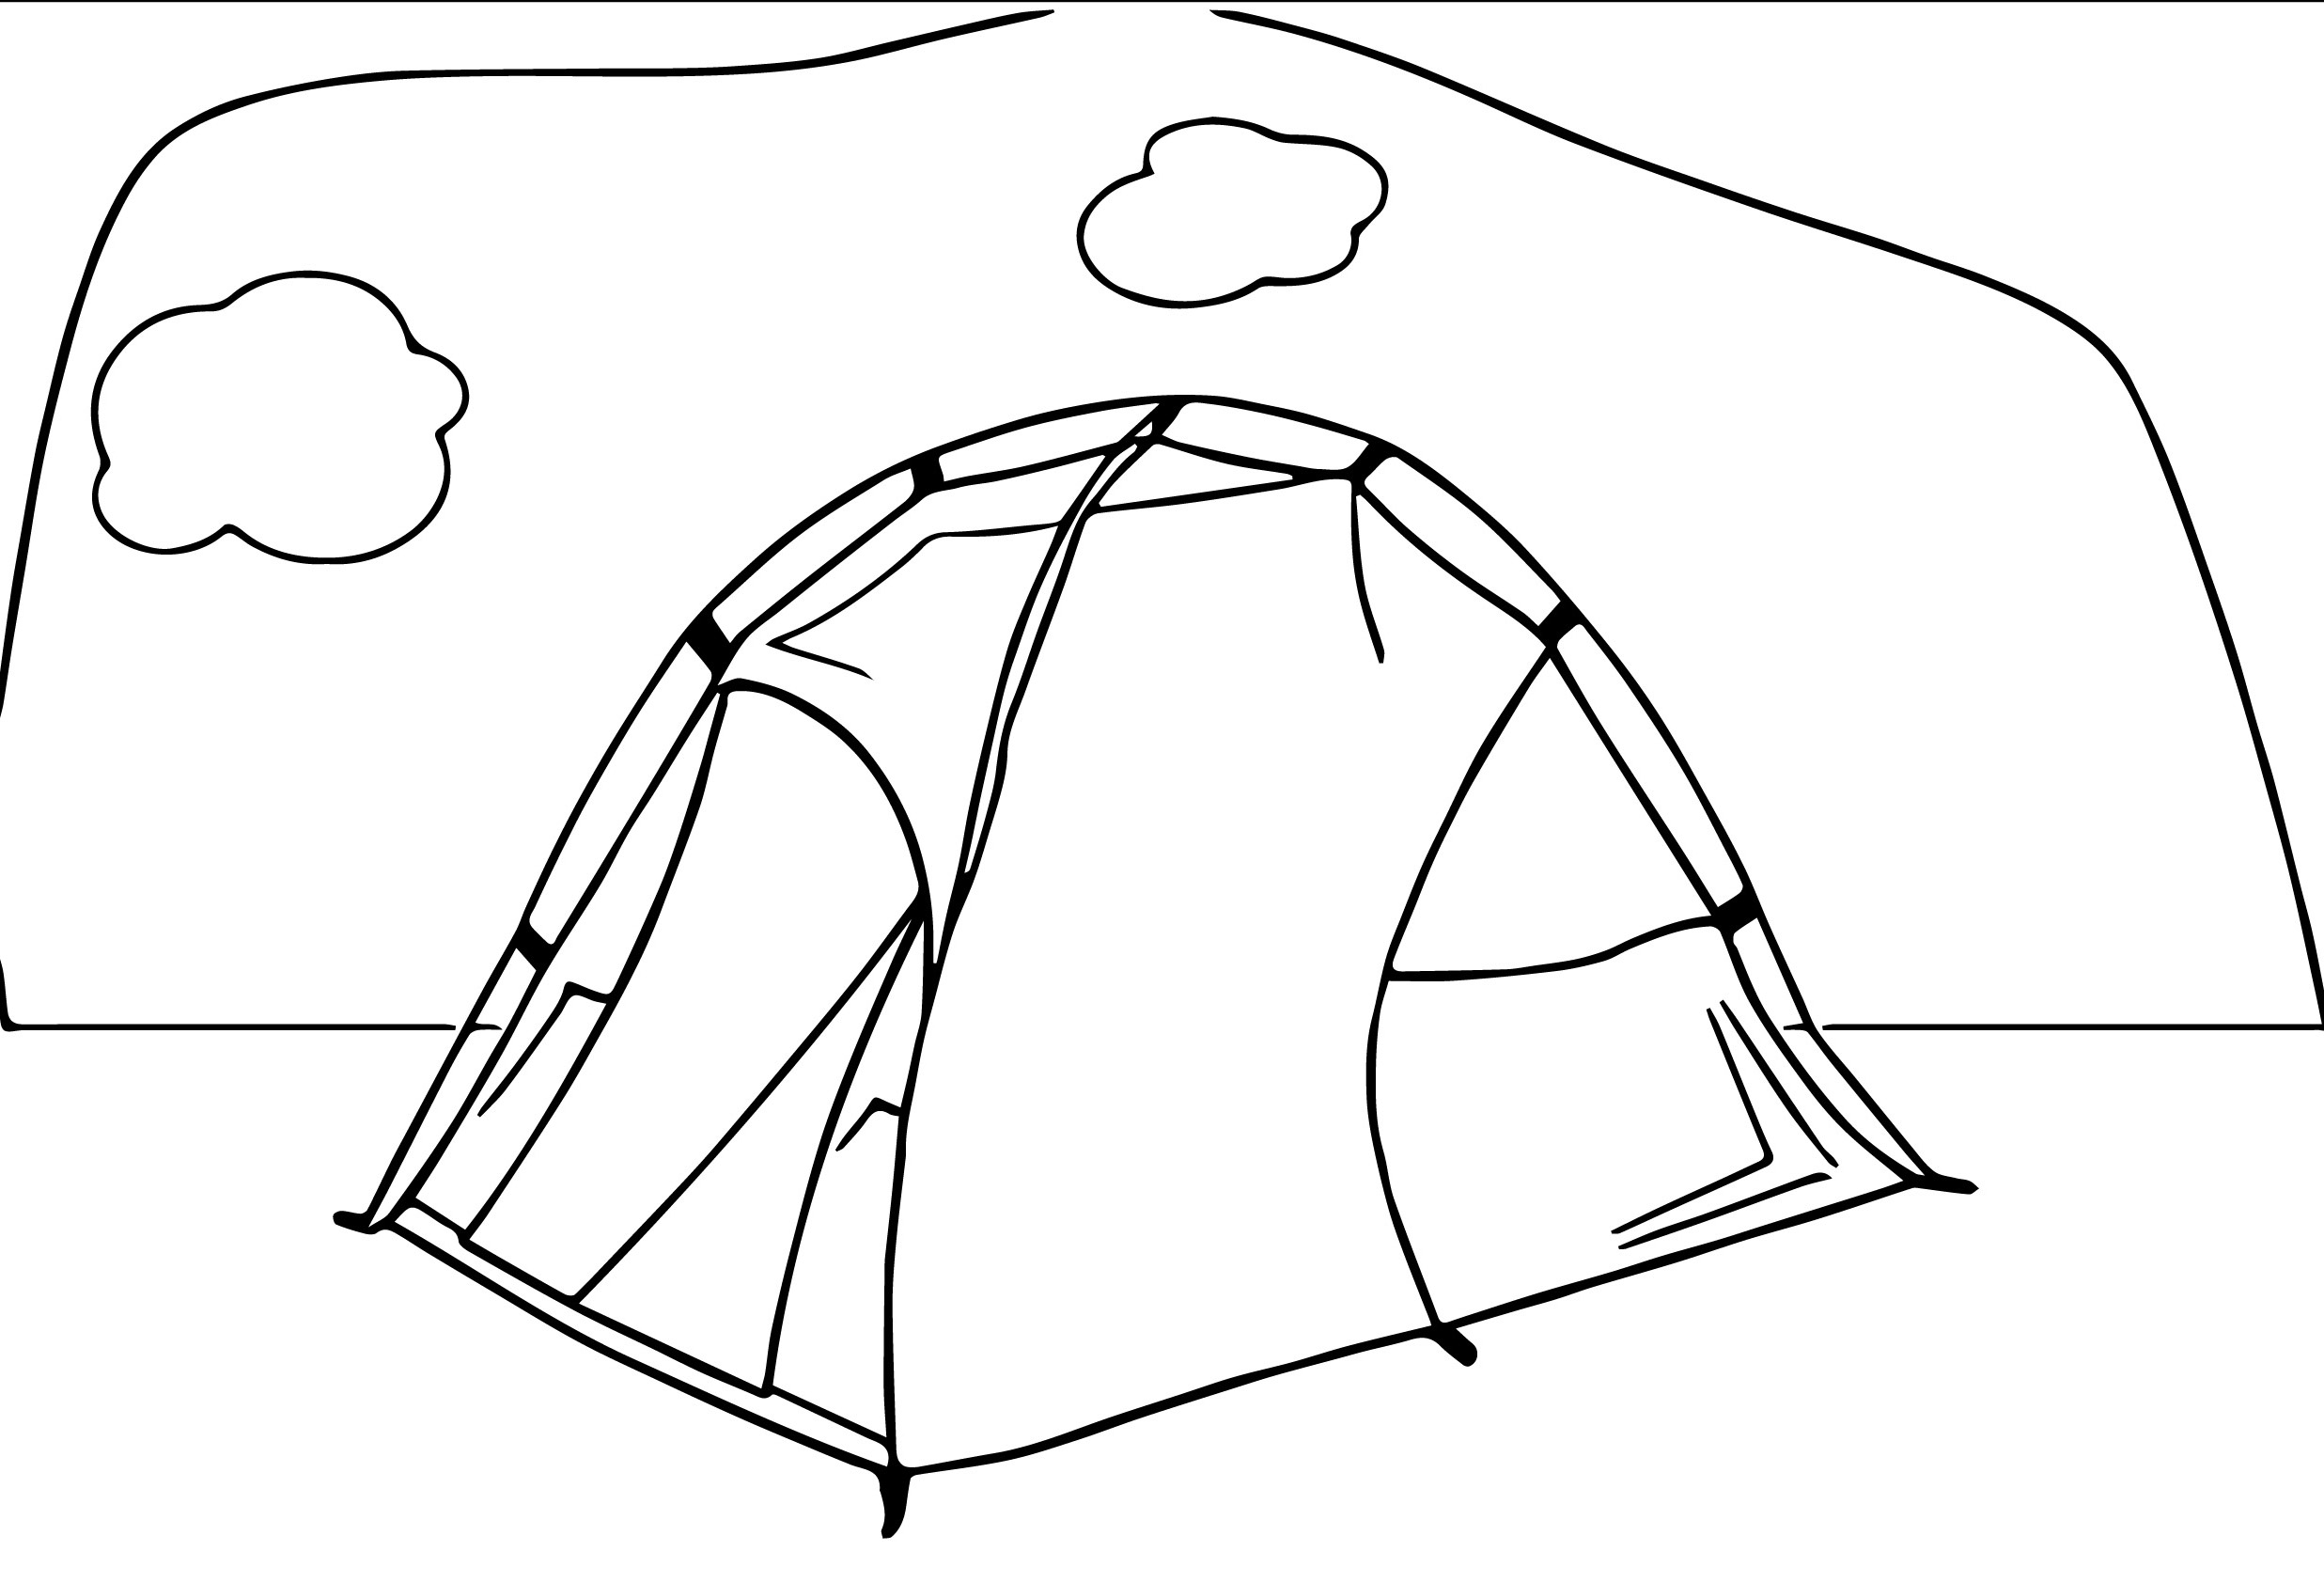 tent_camping_25 coloring page